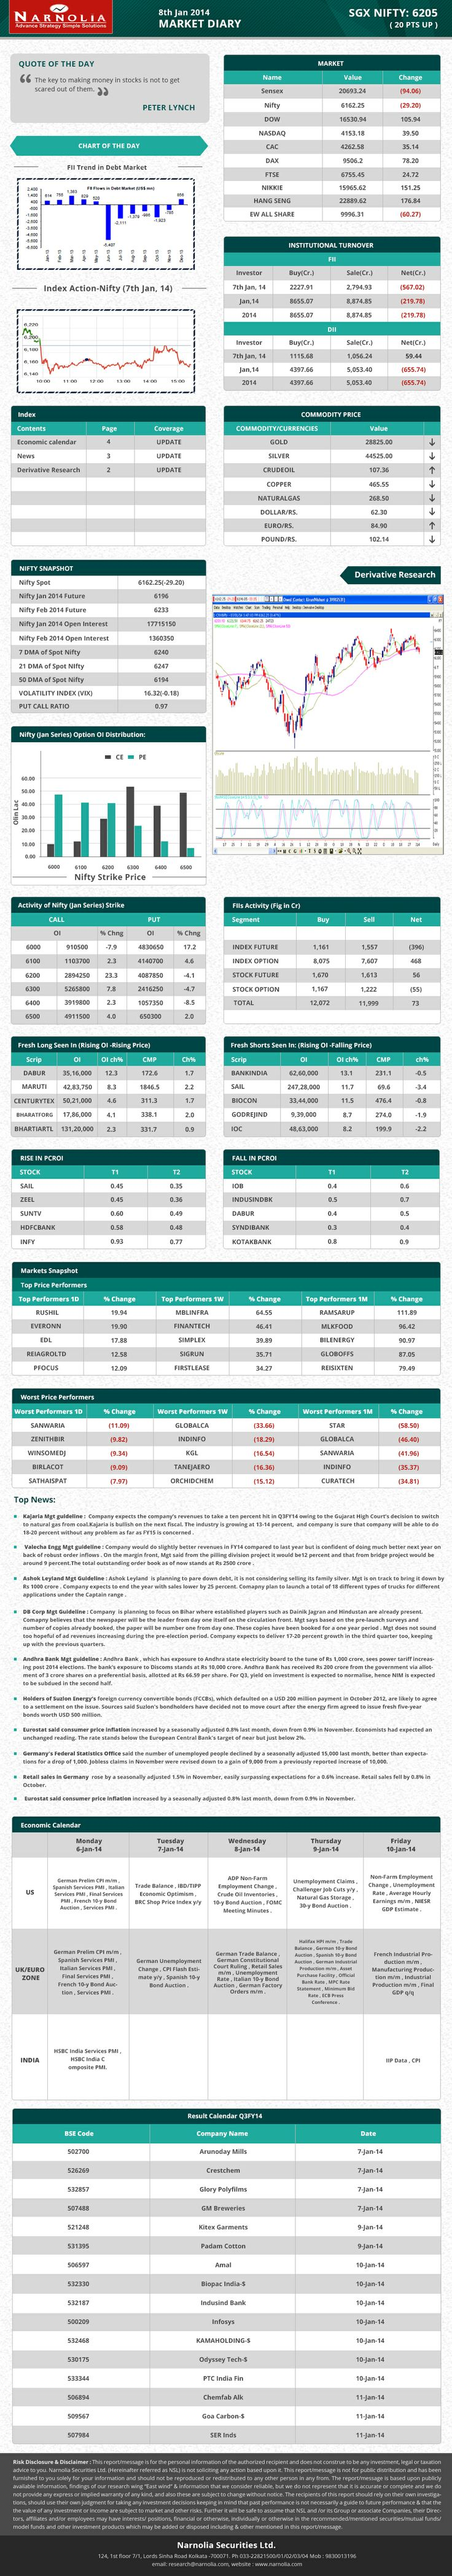 Commodity price of #Gold, #Sliver, #Copper, #doller/Rs and many more. Narnolia Securities Limited Market Diary 30.12.2013 http://www.narnolia.com/index.php/category/archieve/market-diary/